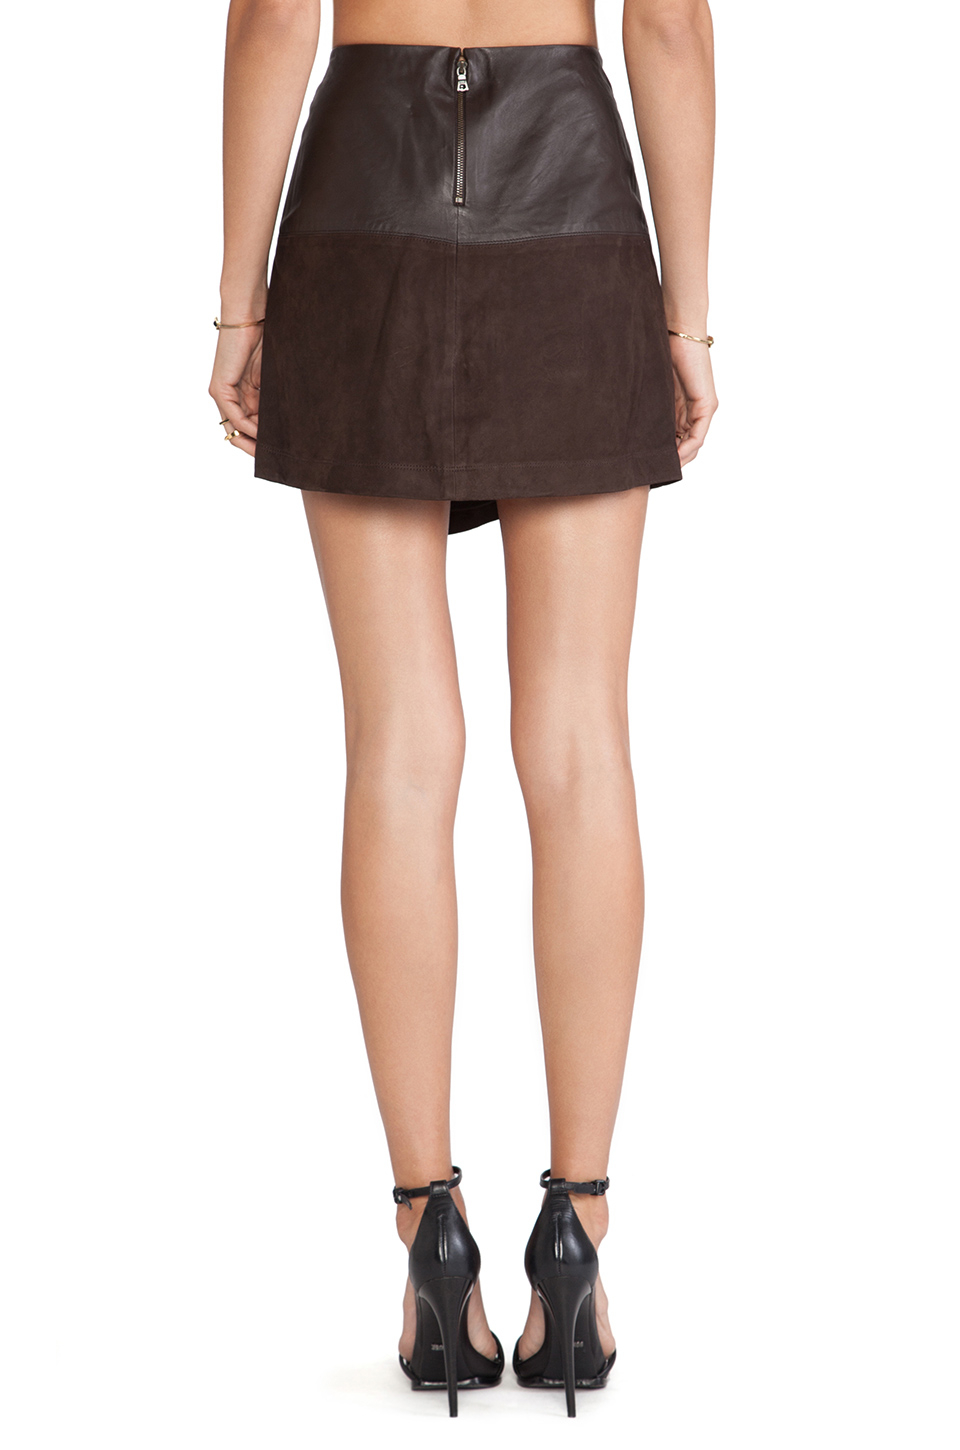 Alice   olivia Leather Wrap Mini Skirt in Brown | Lyst